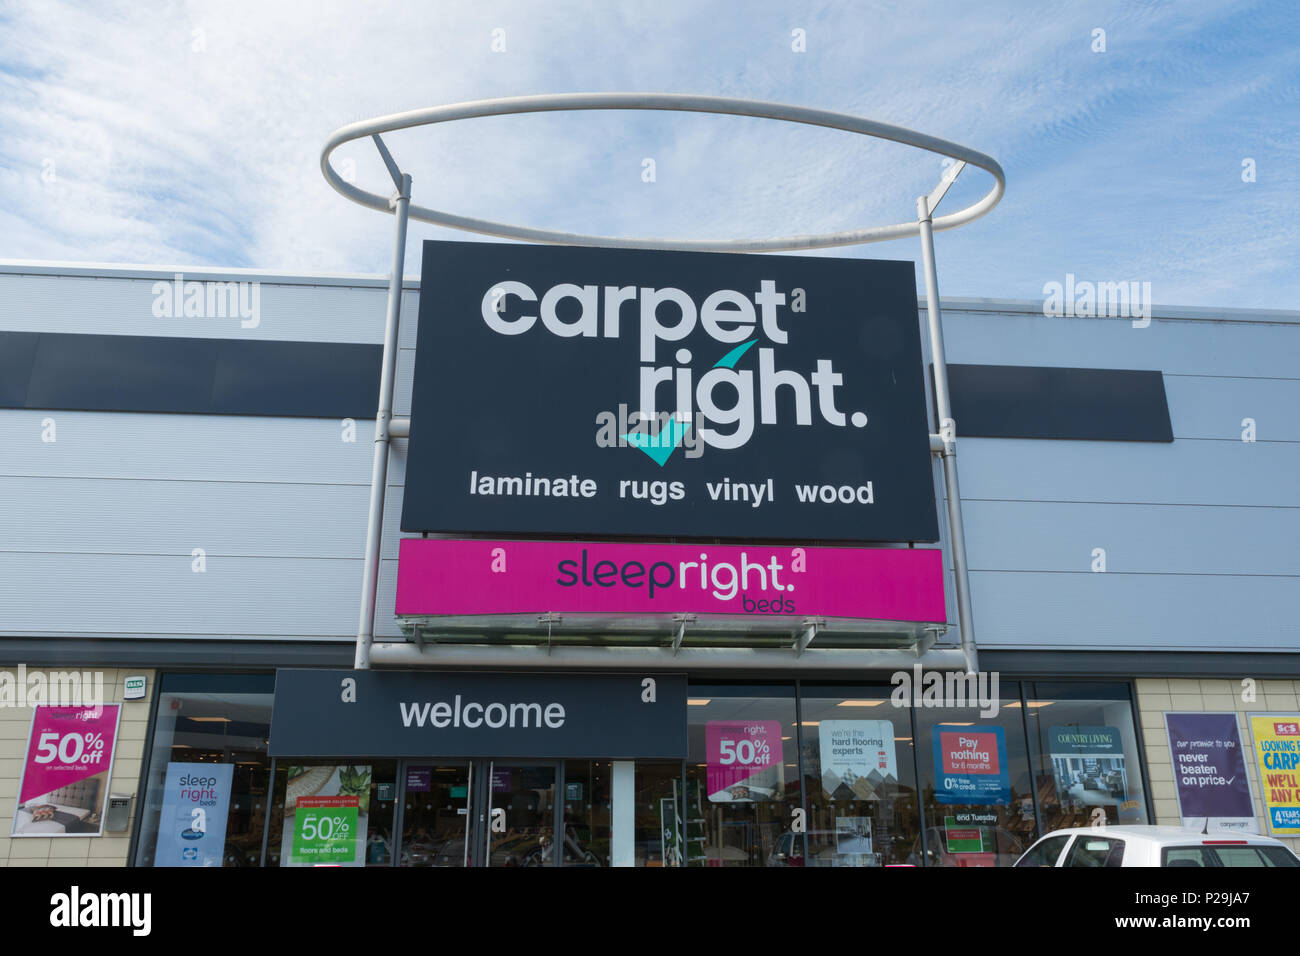 Exterior of carpet right shop with sign, UK - Stock Image